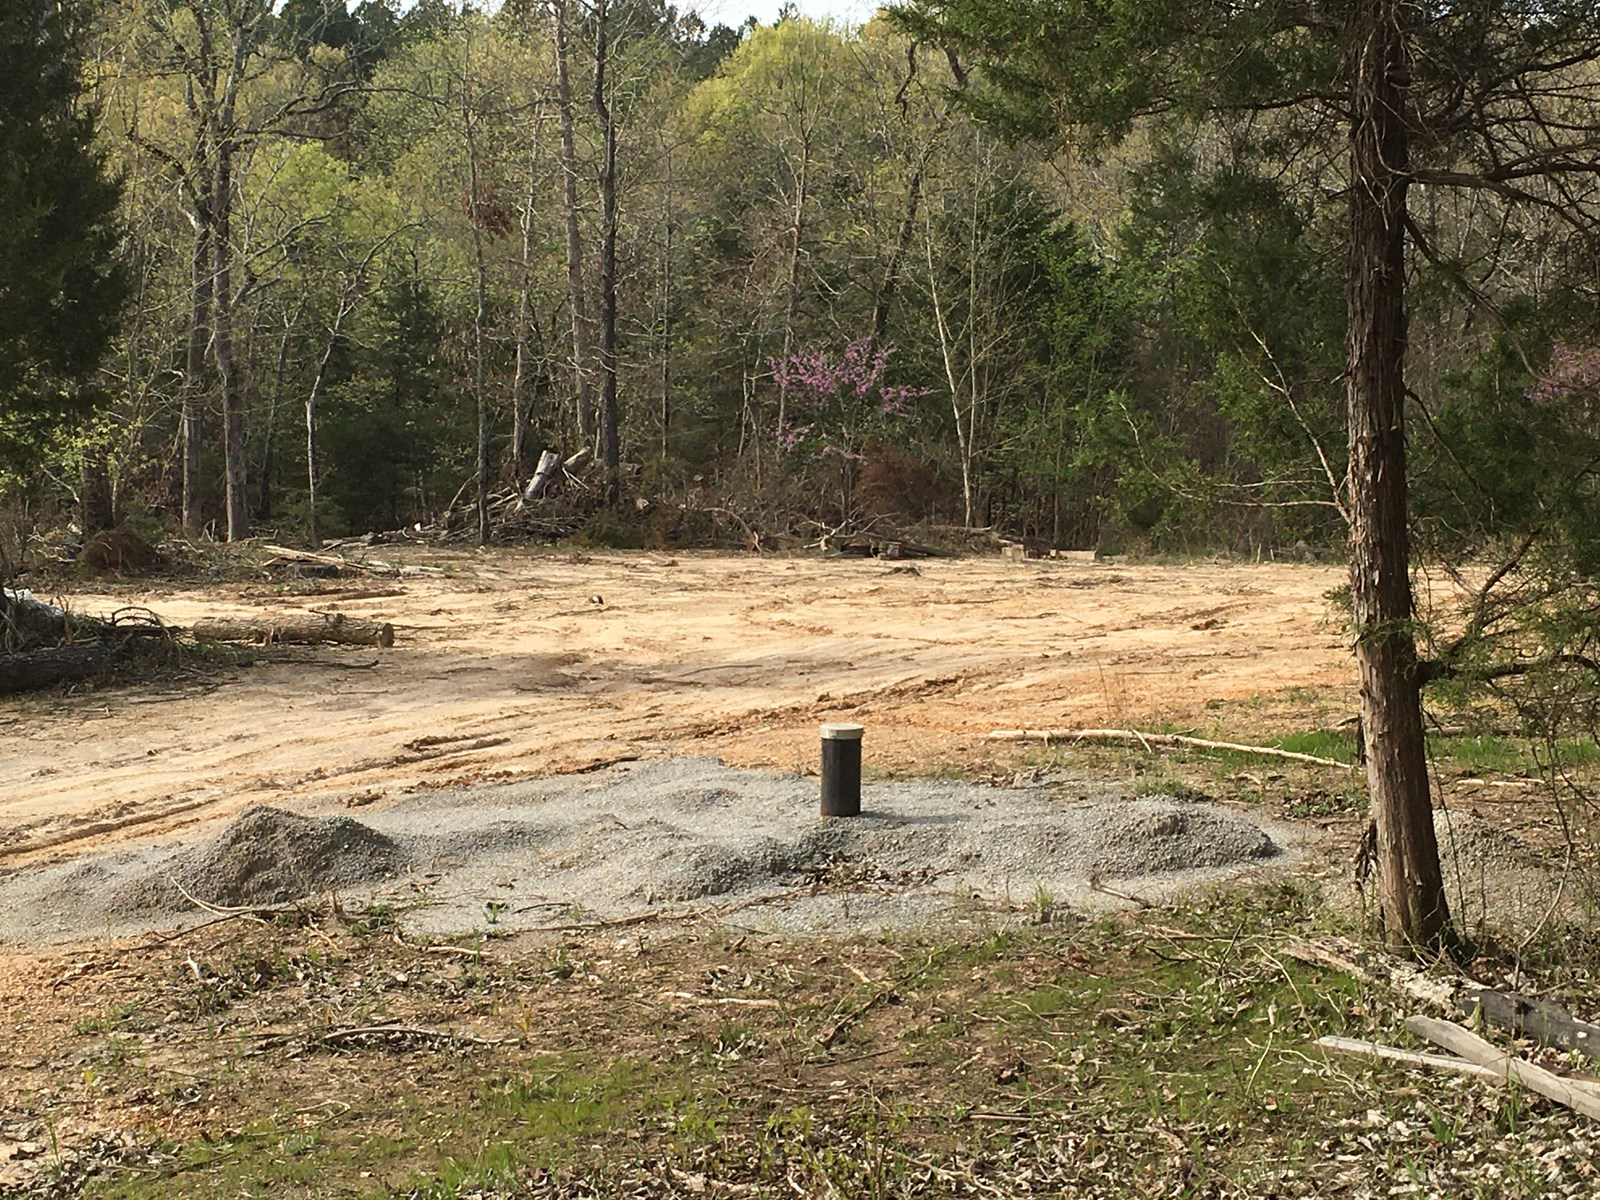 AR Recreational property Hunting Land 11 acres w/Well, woods